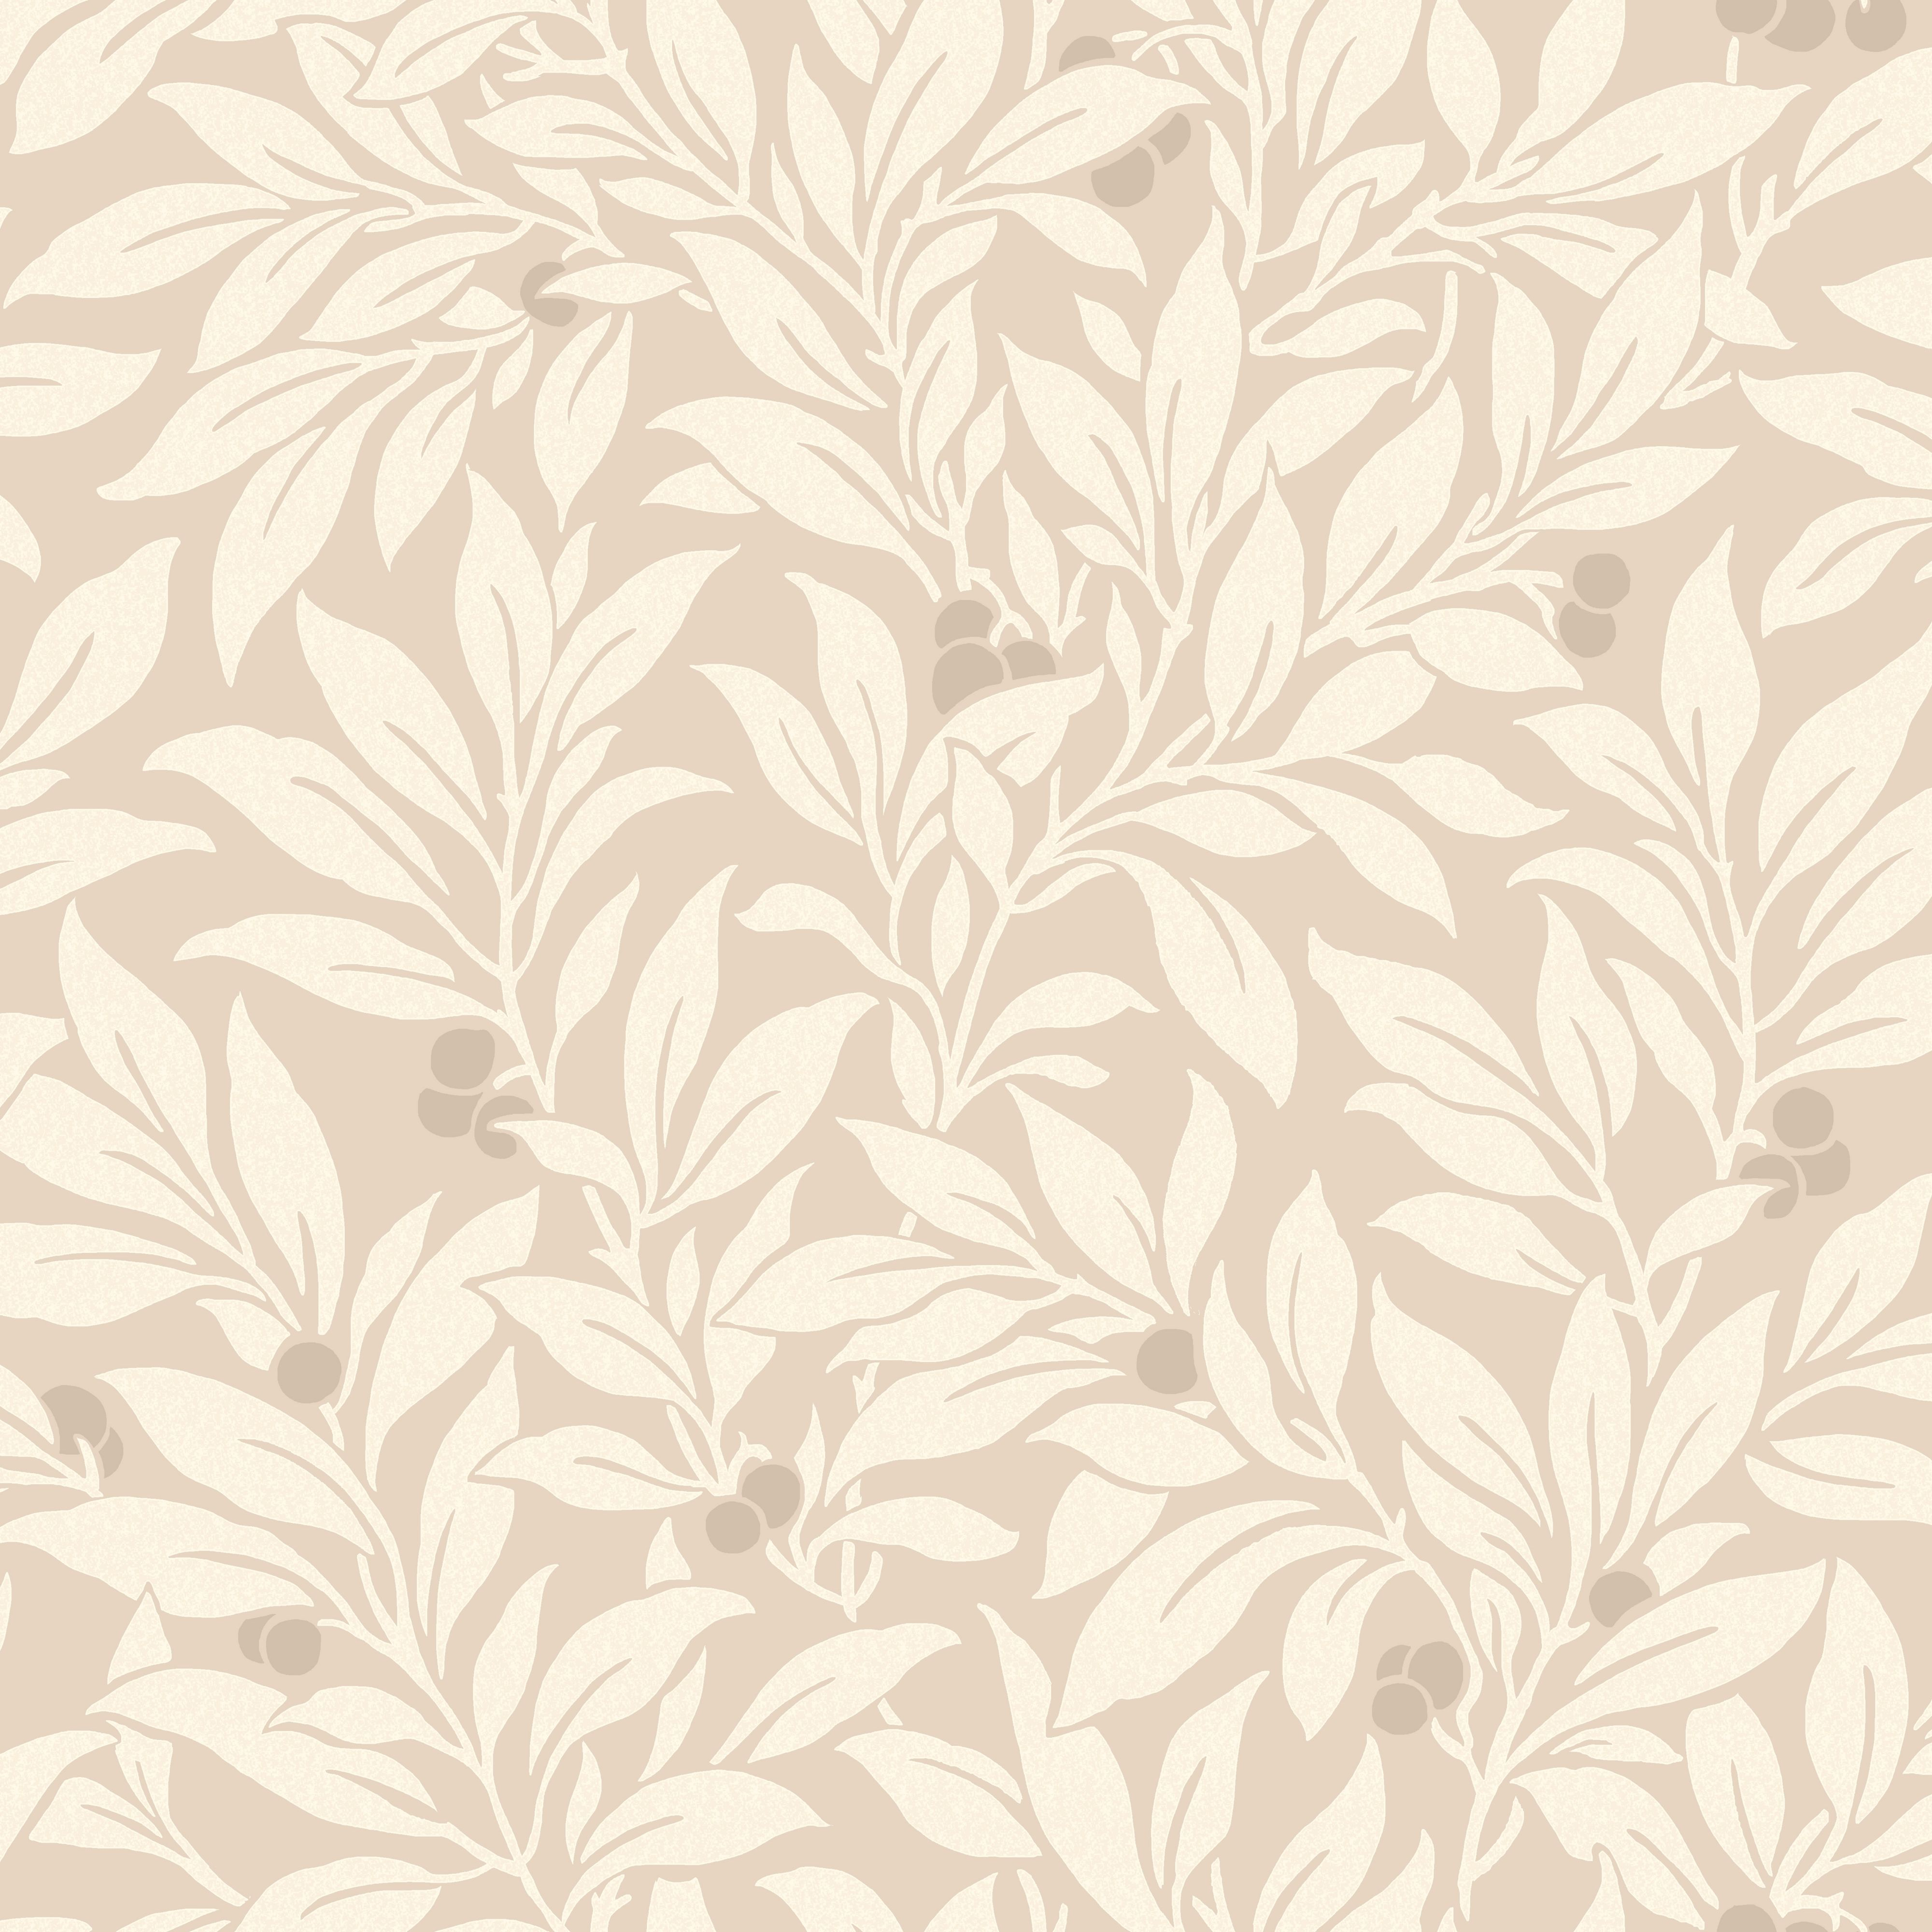 Fine Décor Mulberry Natural Floral Wallpaper